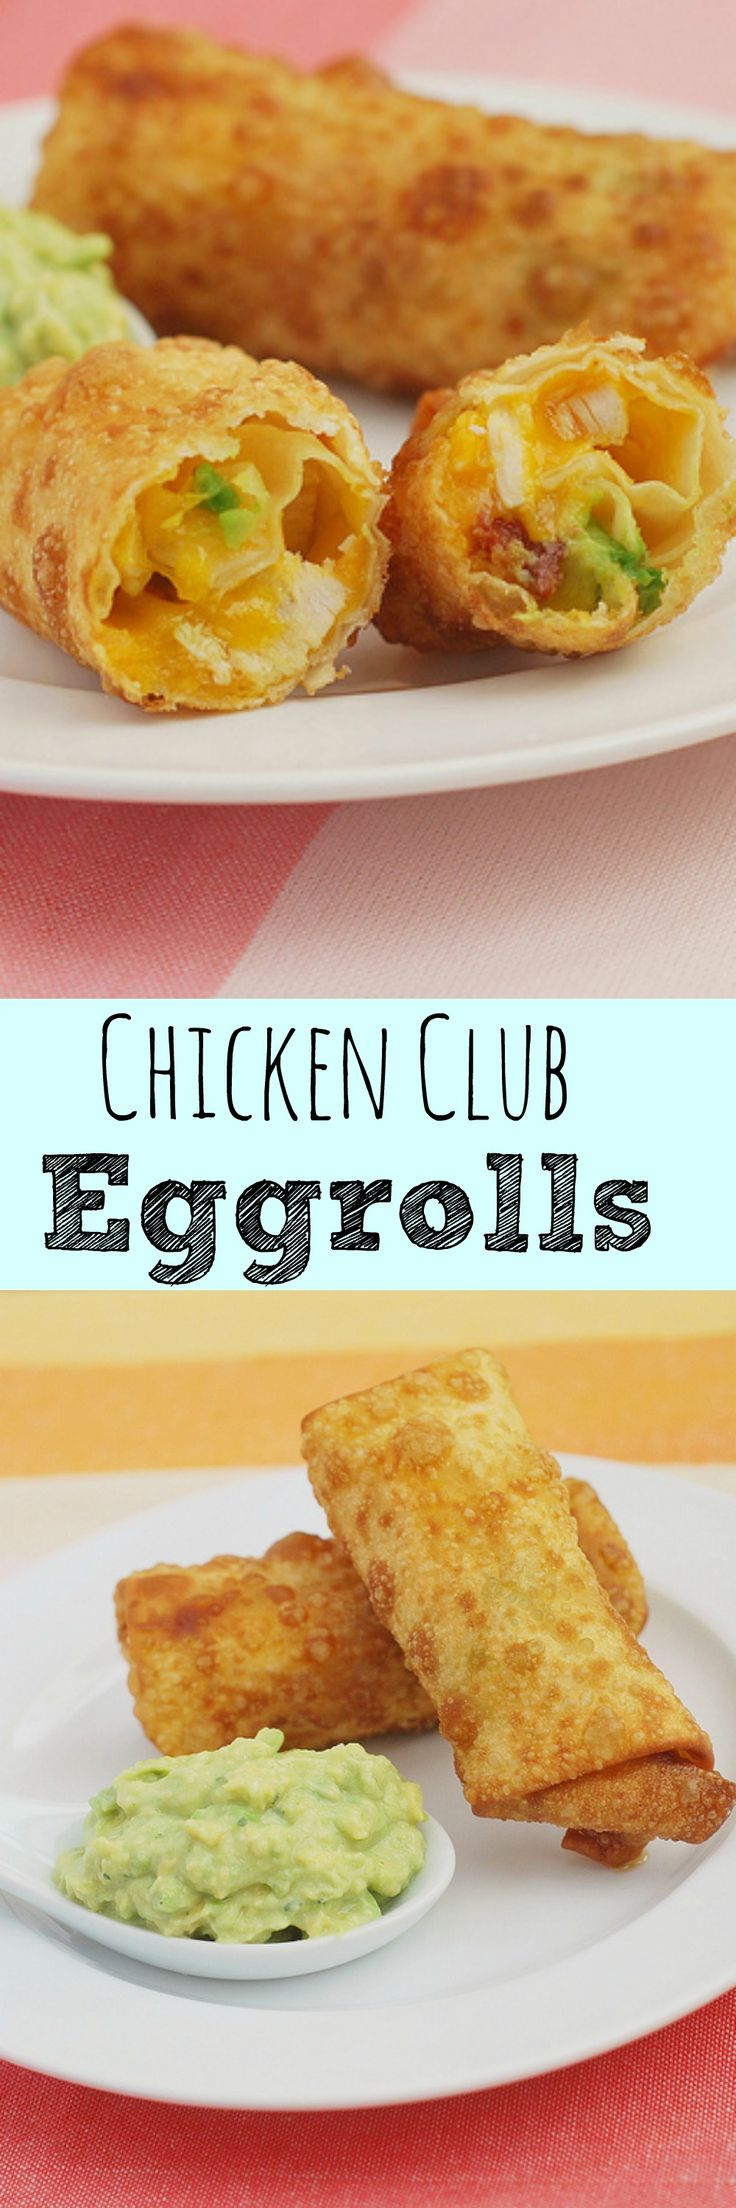 Chicken Club Eggrolls - the most delicious eggroll recipe! Filled with chicken, bacon, avocado, and cheddar cheese. Plus, an amazing avocado ranch dipping sauce!